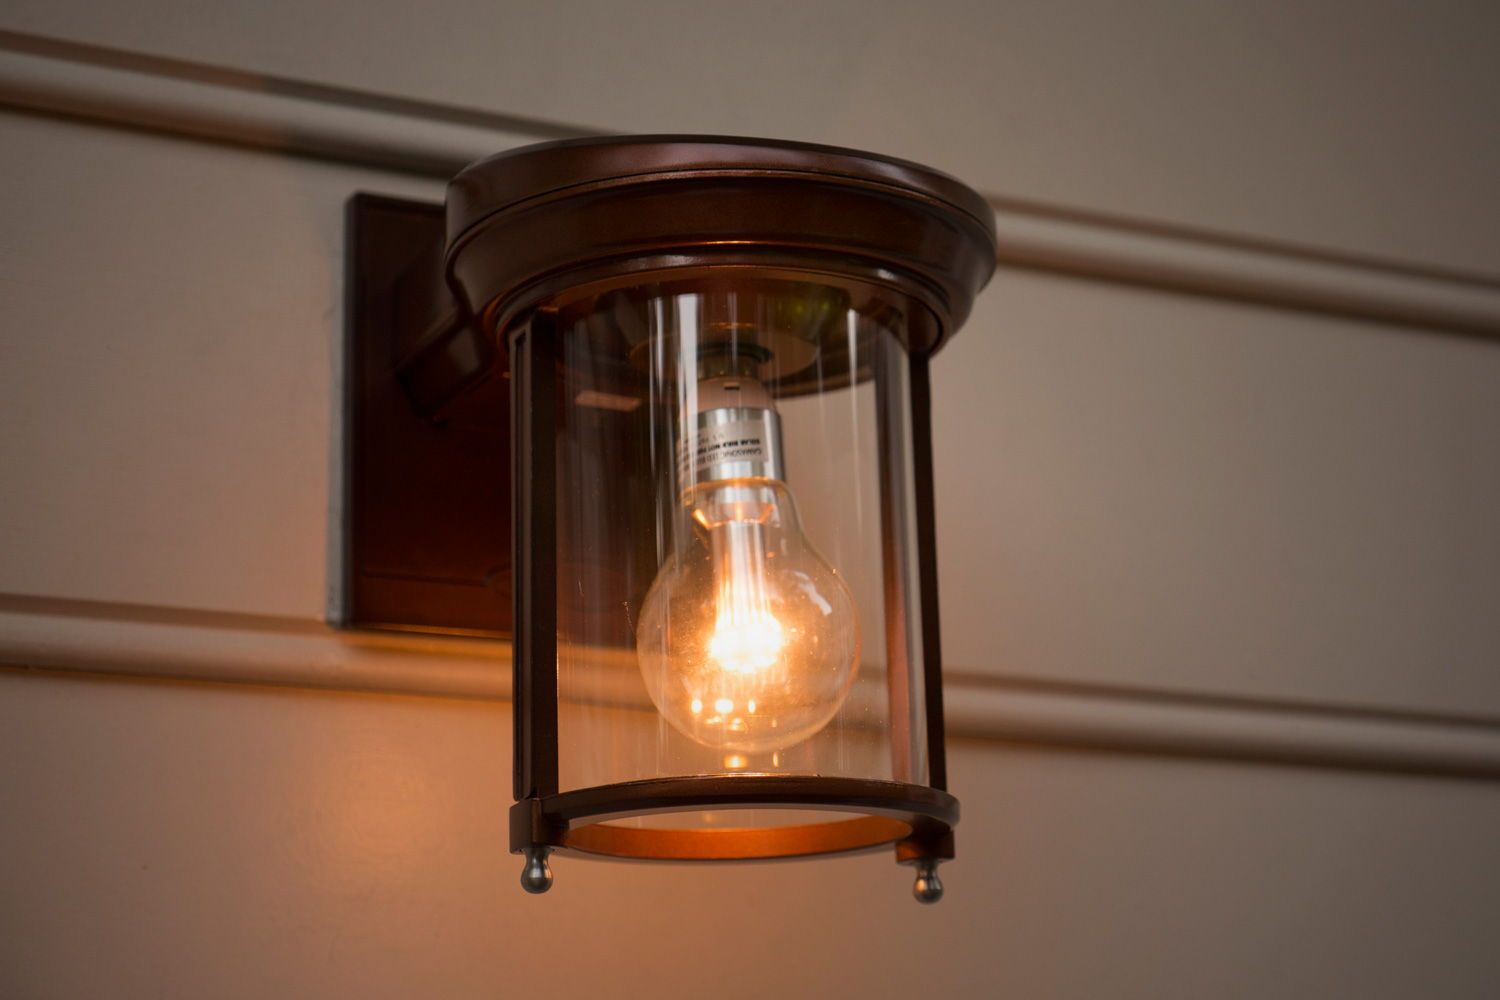 Let This Outdoor Solar Coach Light Be A Staple Point In Your Decor Easily Install To The Exterior Of House And